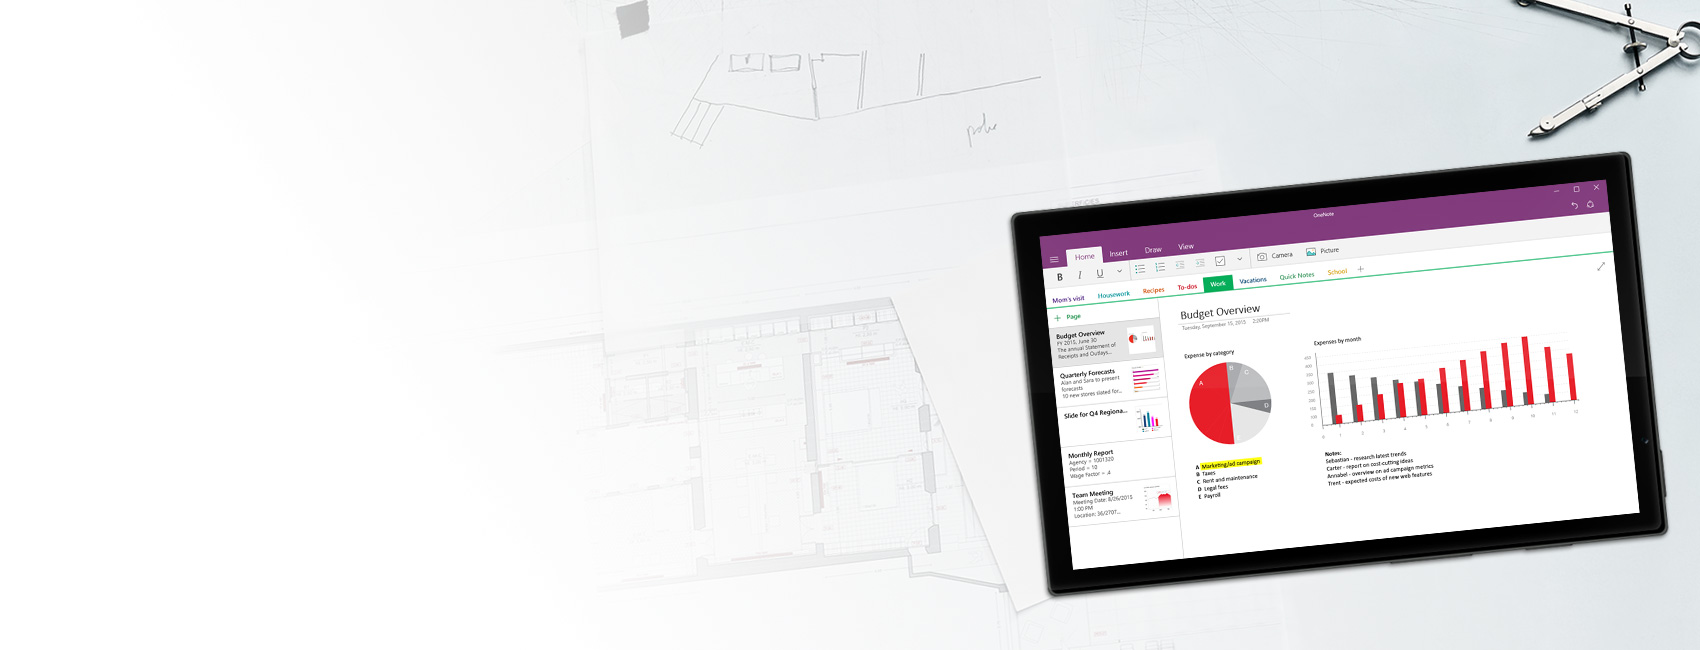 Windows tablet displaying a OneNote notebook with budget overview charts and graphs